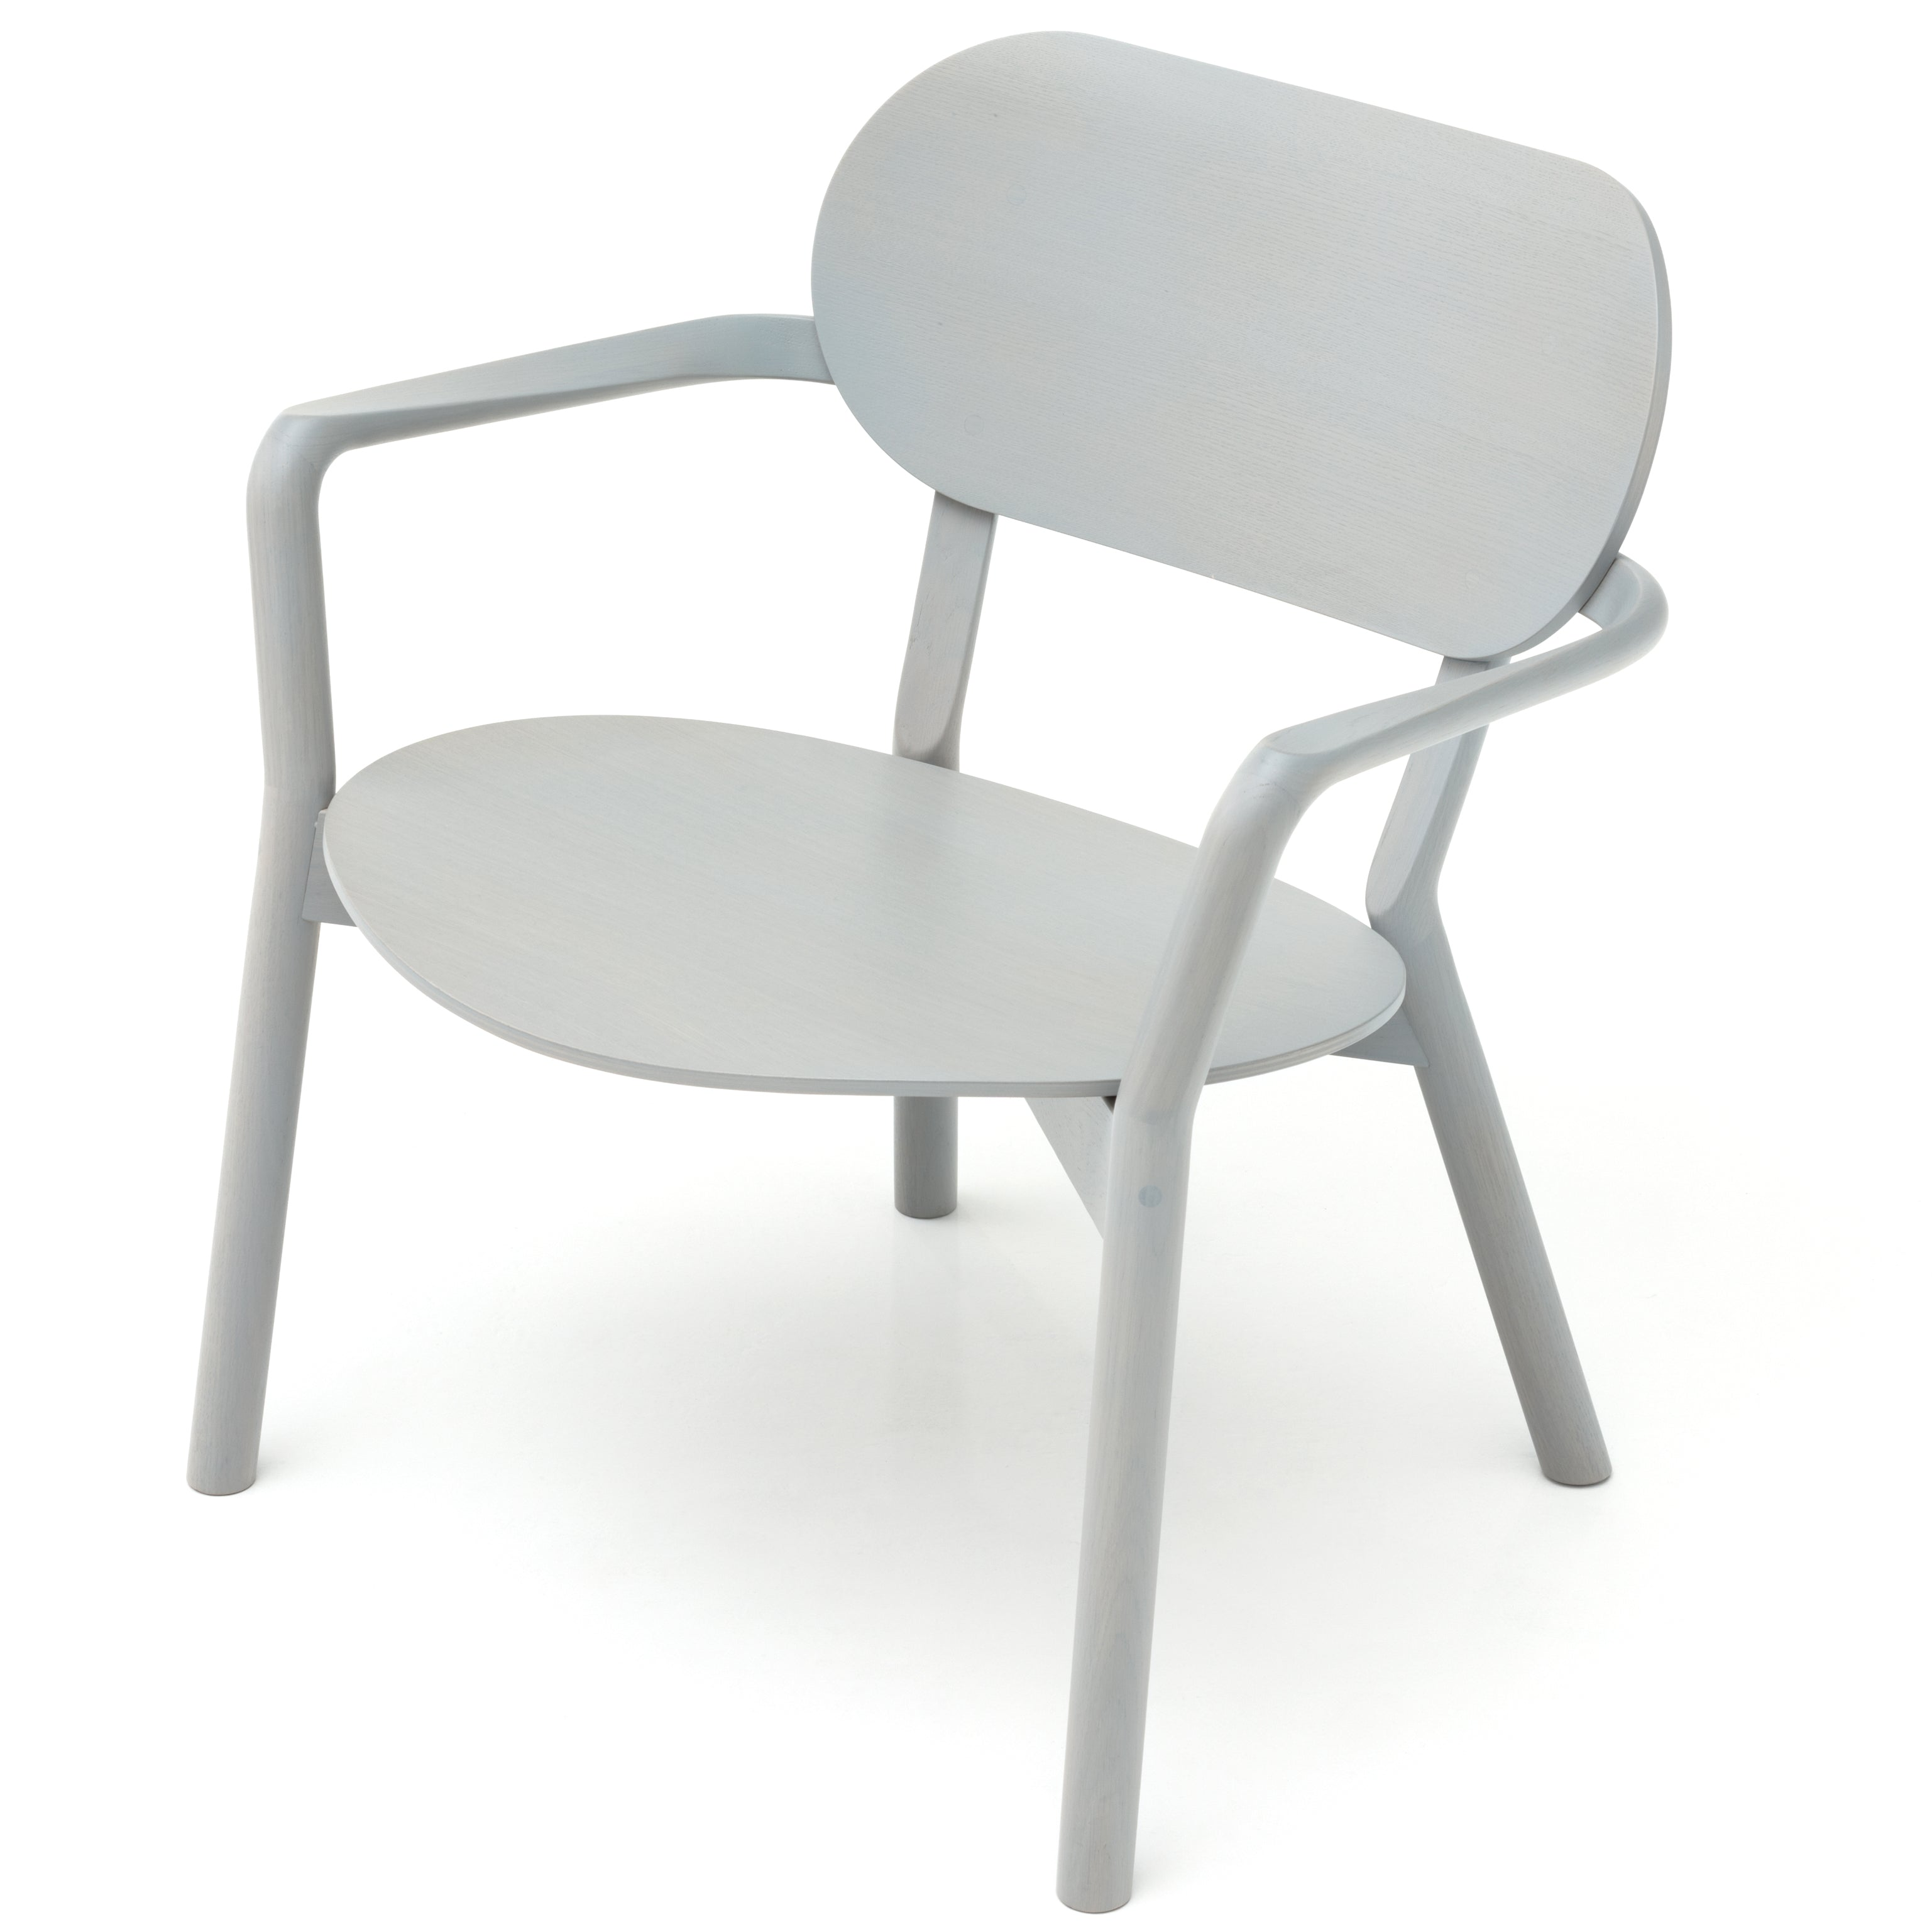 Castor Low Chair: Grain Grey + Without Pad